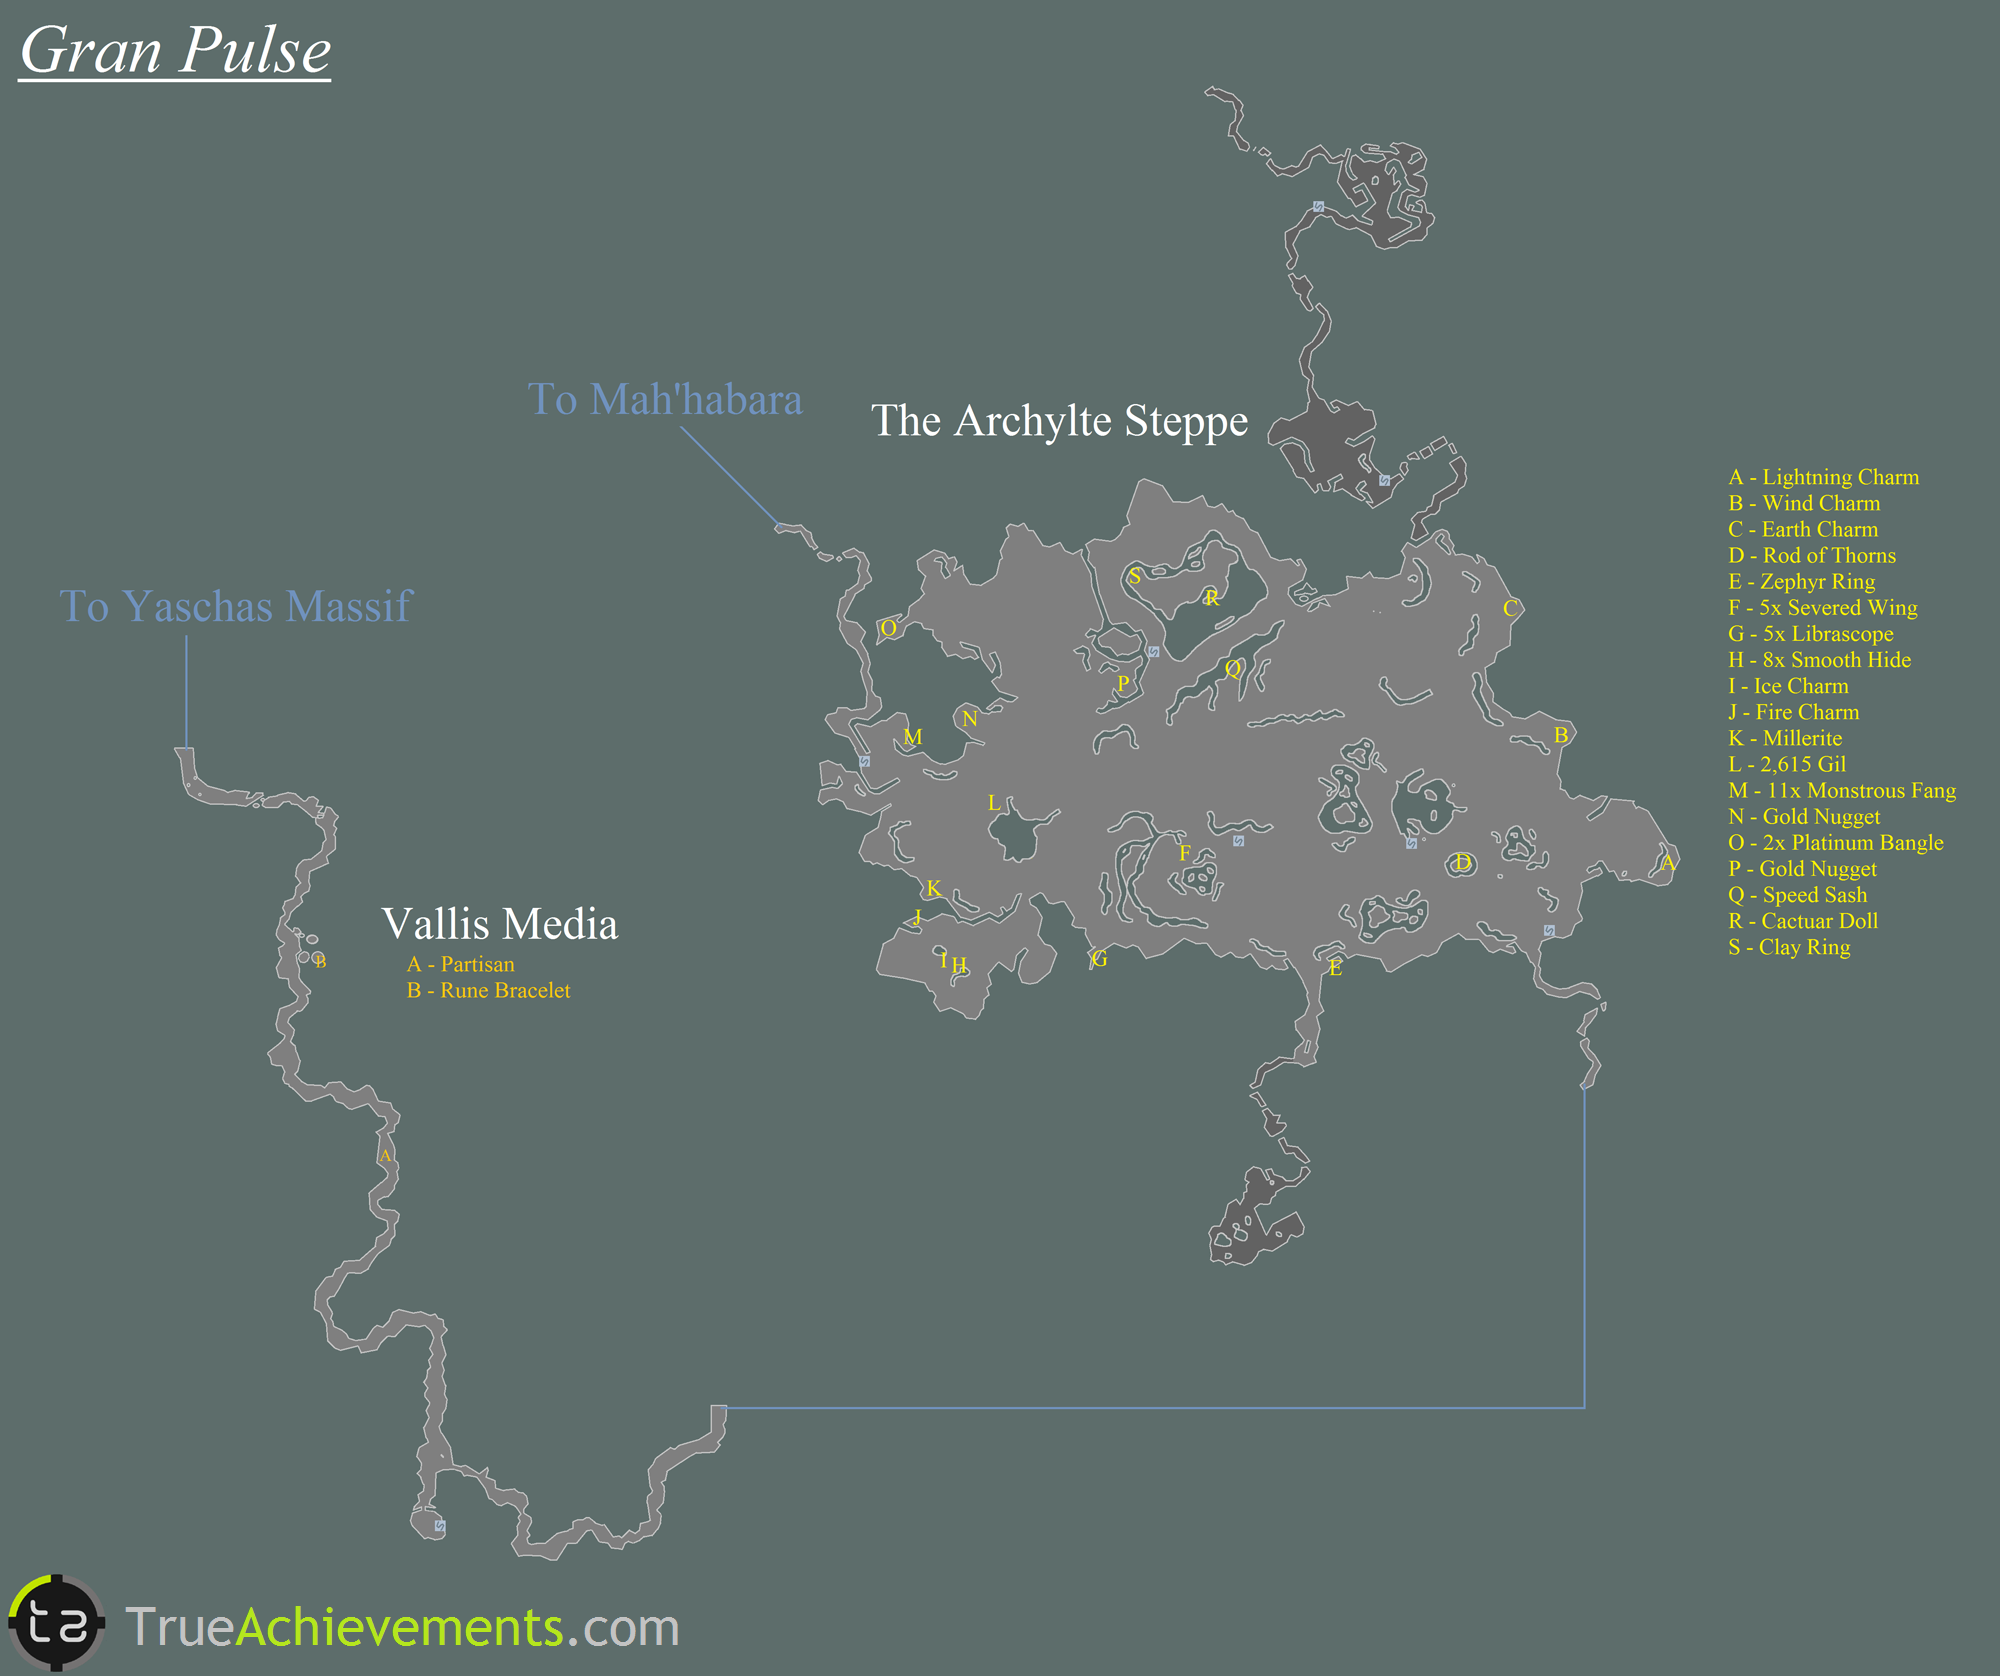 Guide For Final Fantasy Xiii Story Walkthrough Chapters 11 13